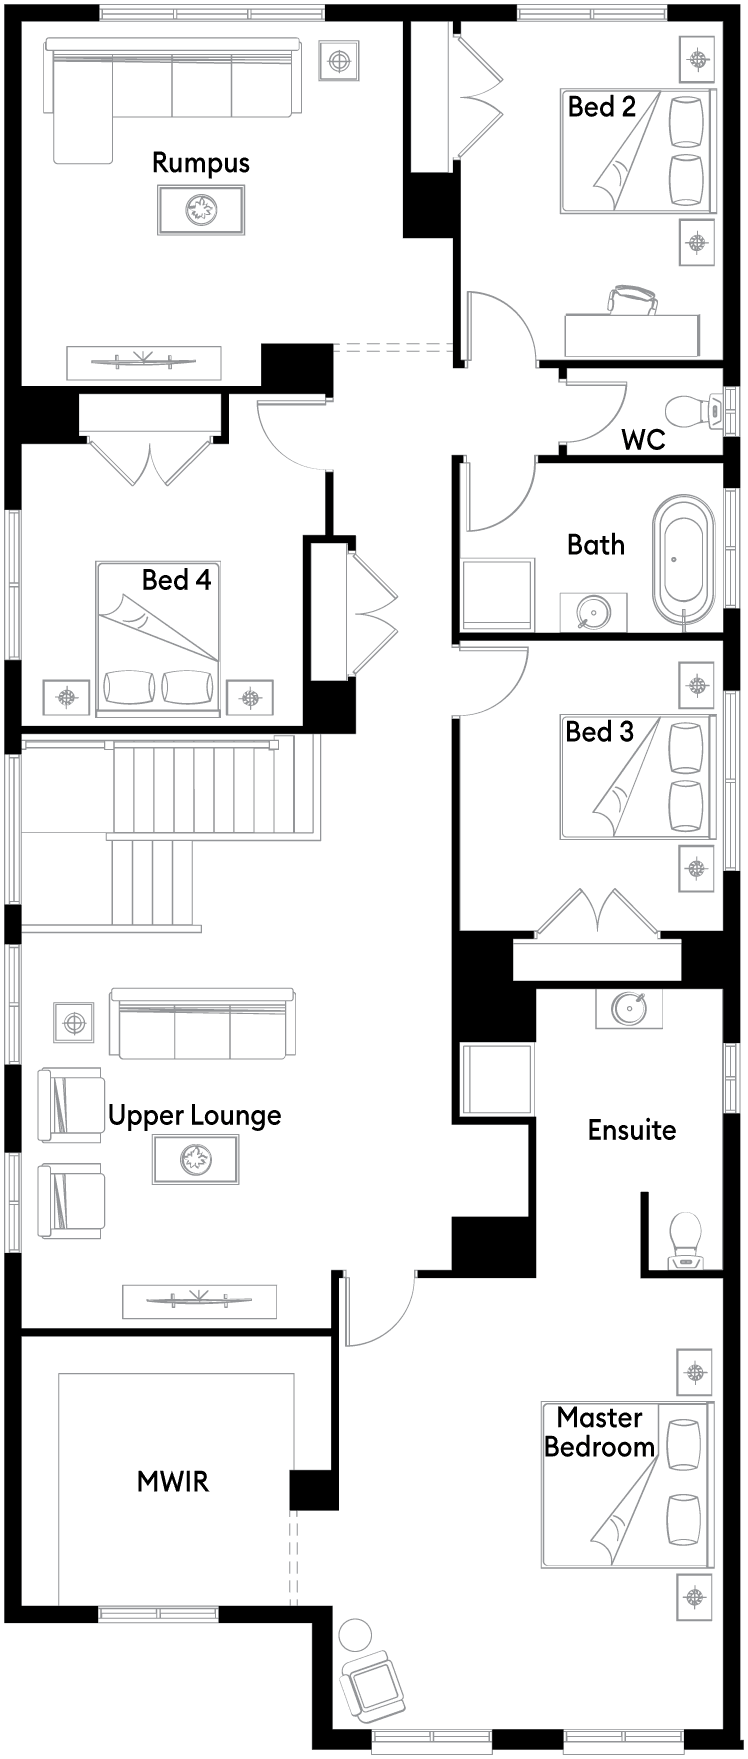 FloorPlan2_HOUSE769_Stanhope_41-02-1